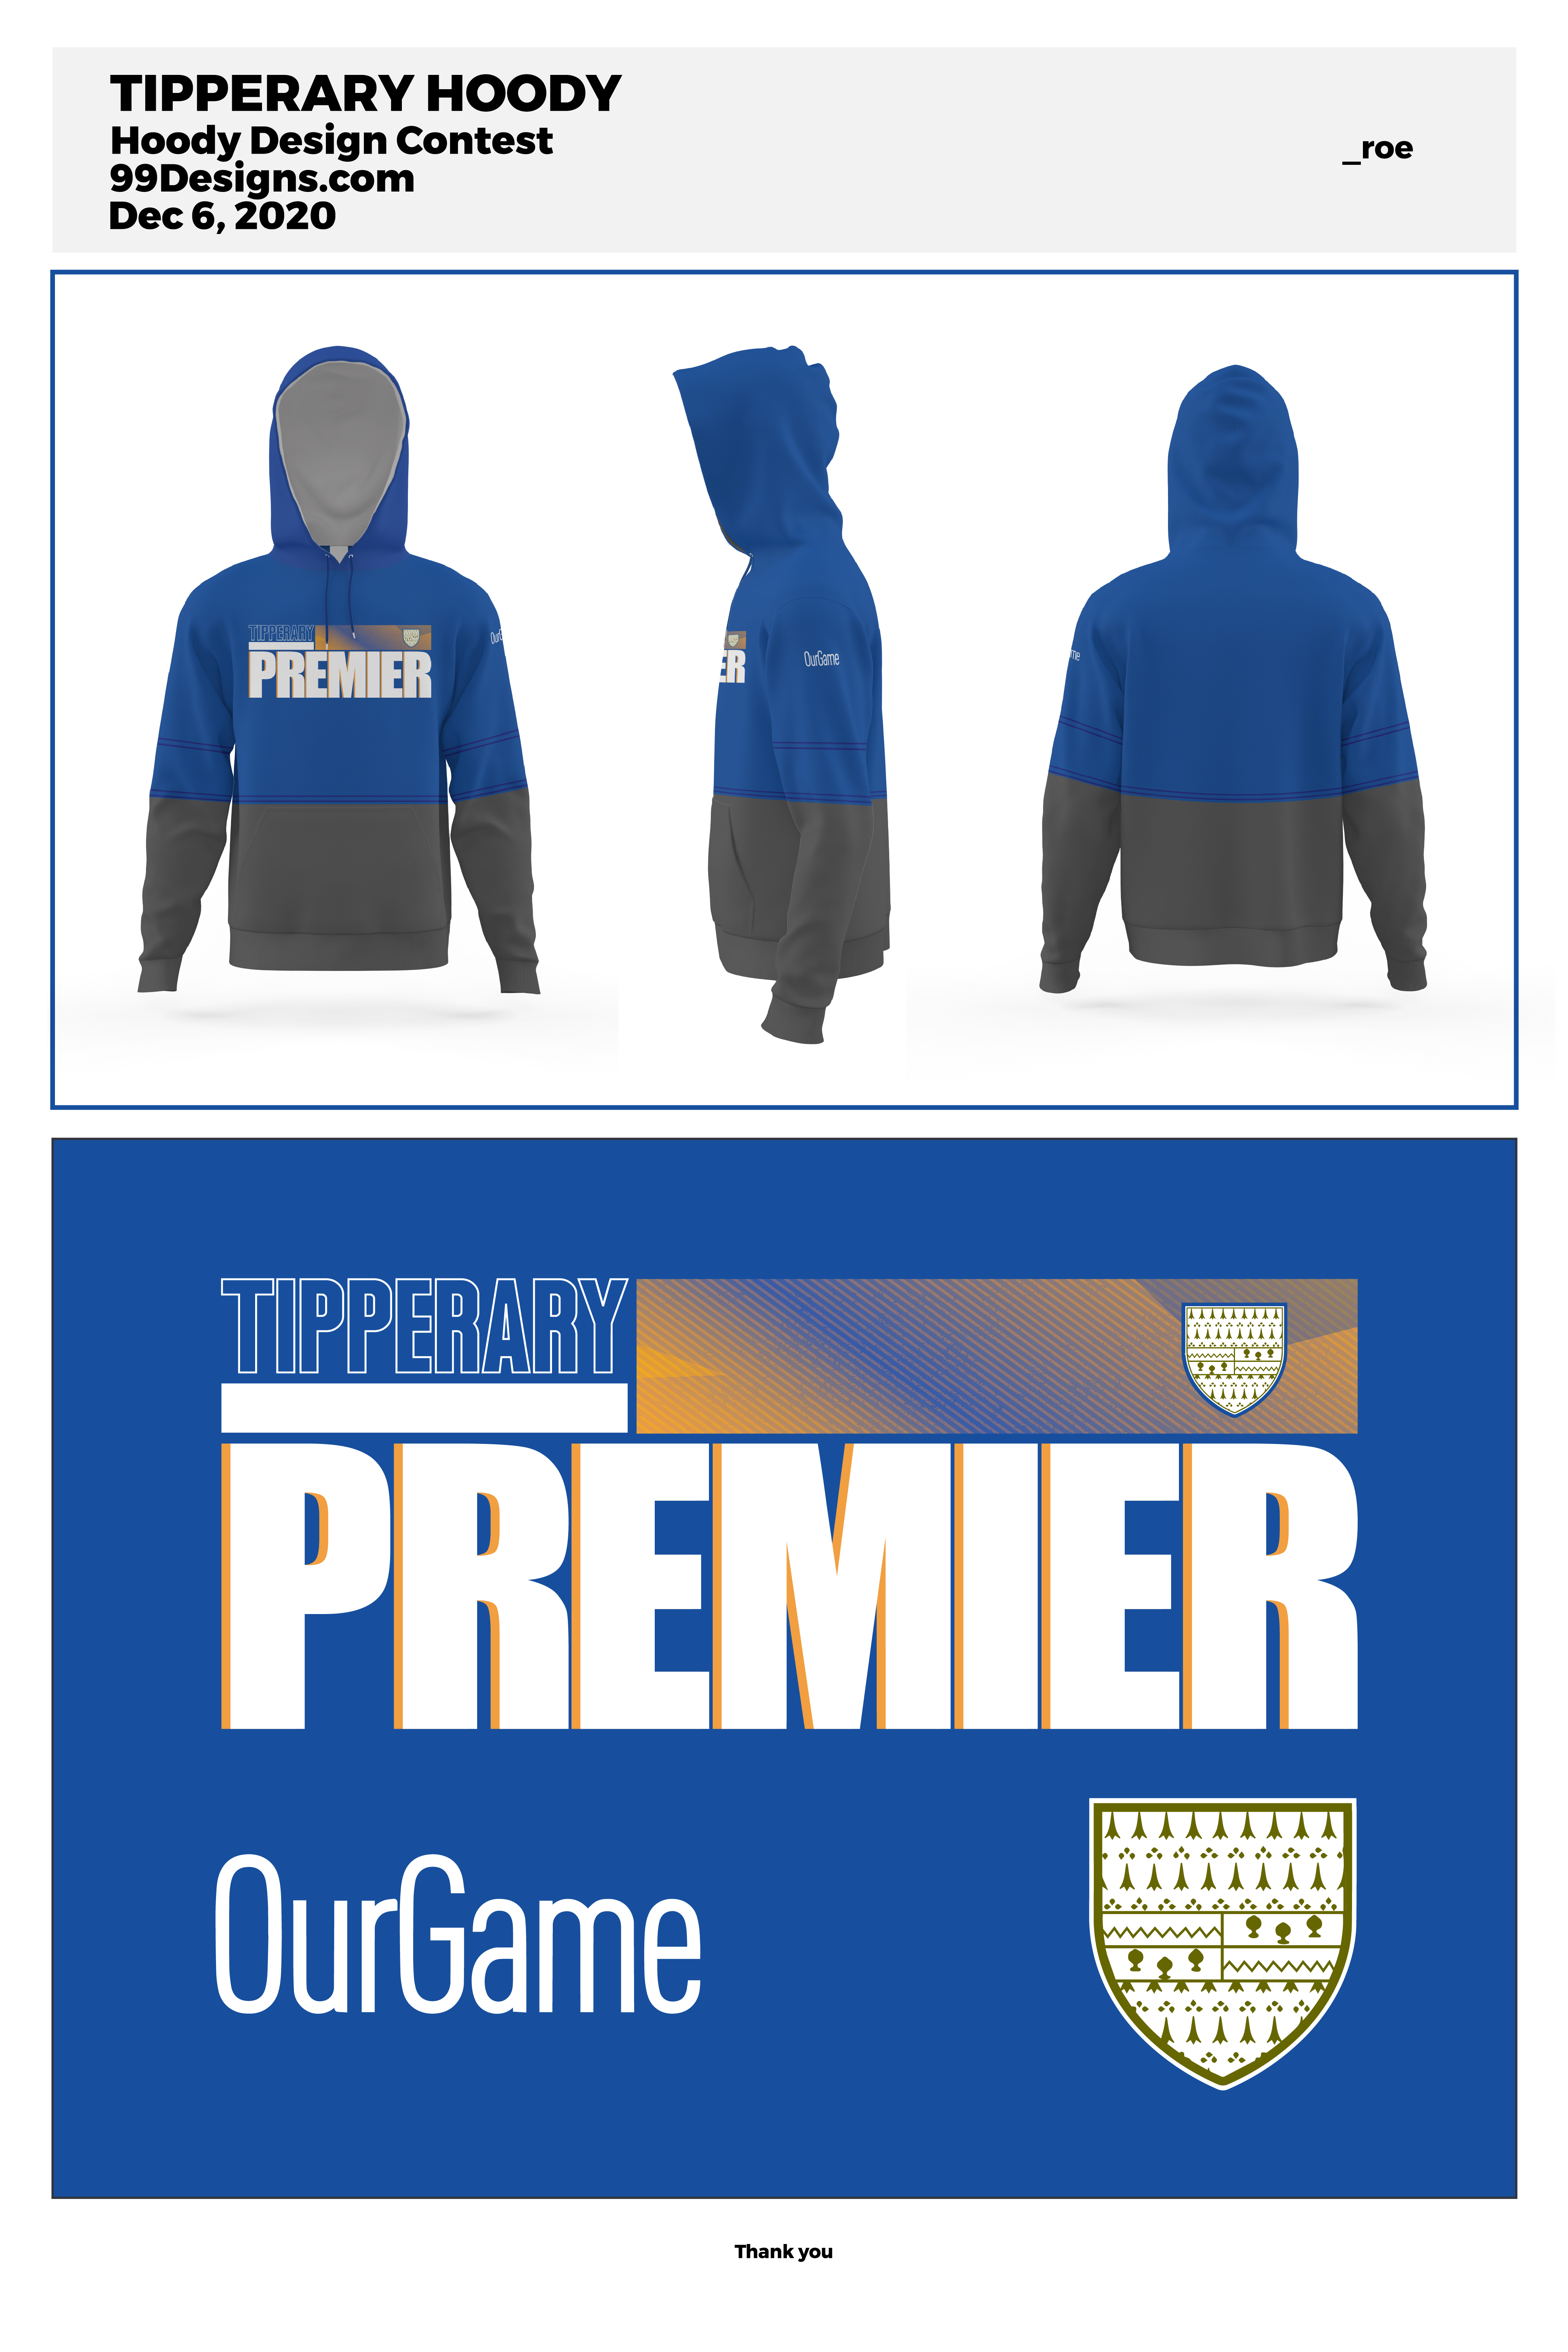 Hoodie required for local Irish team based on NFL hoodies